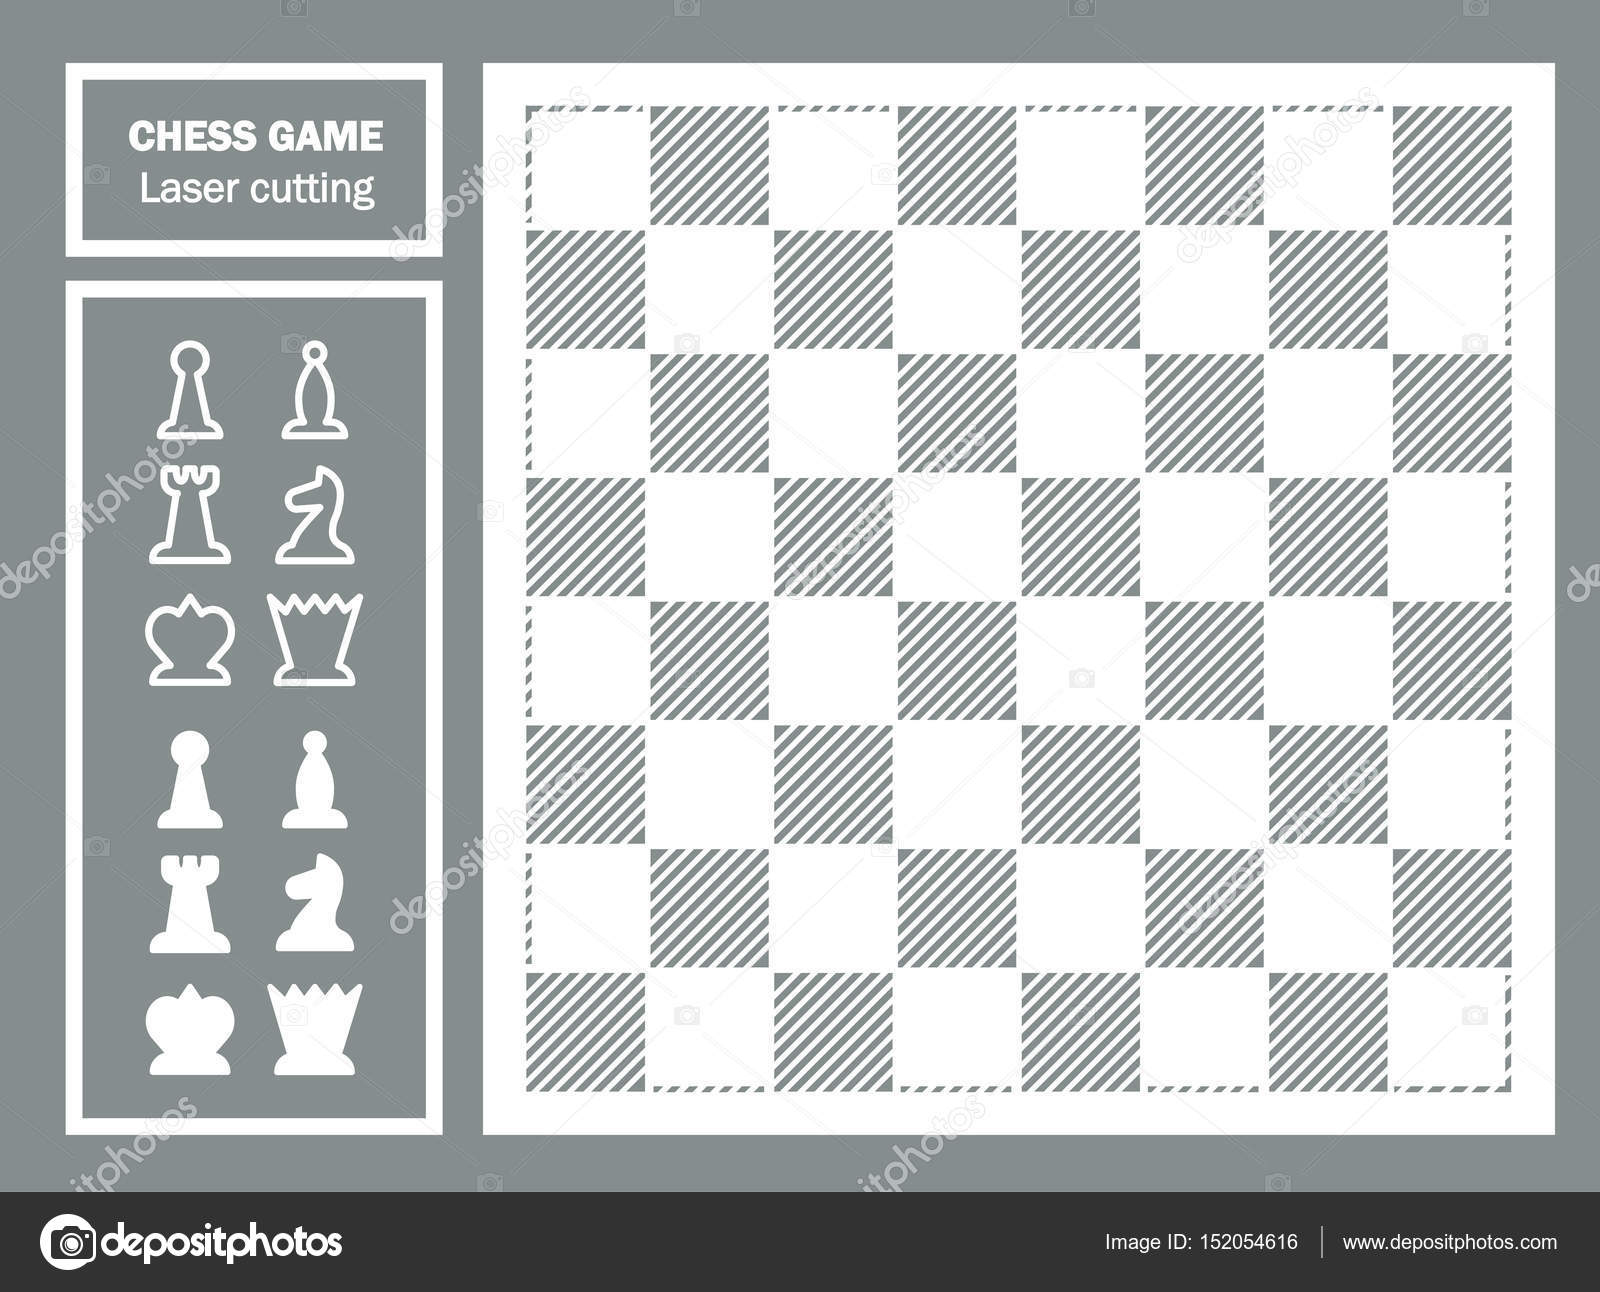 chess game decorative laser cut geometric ornament chessboard and